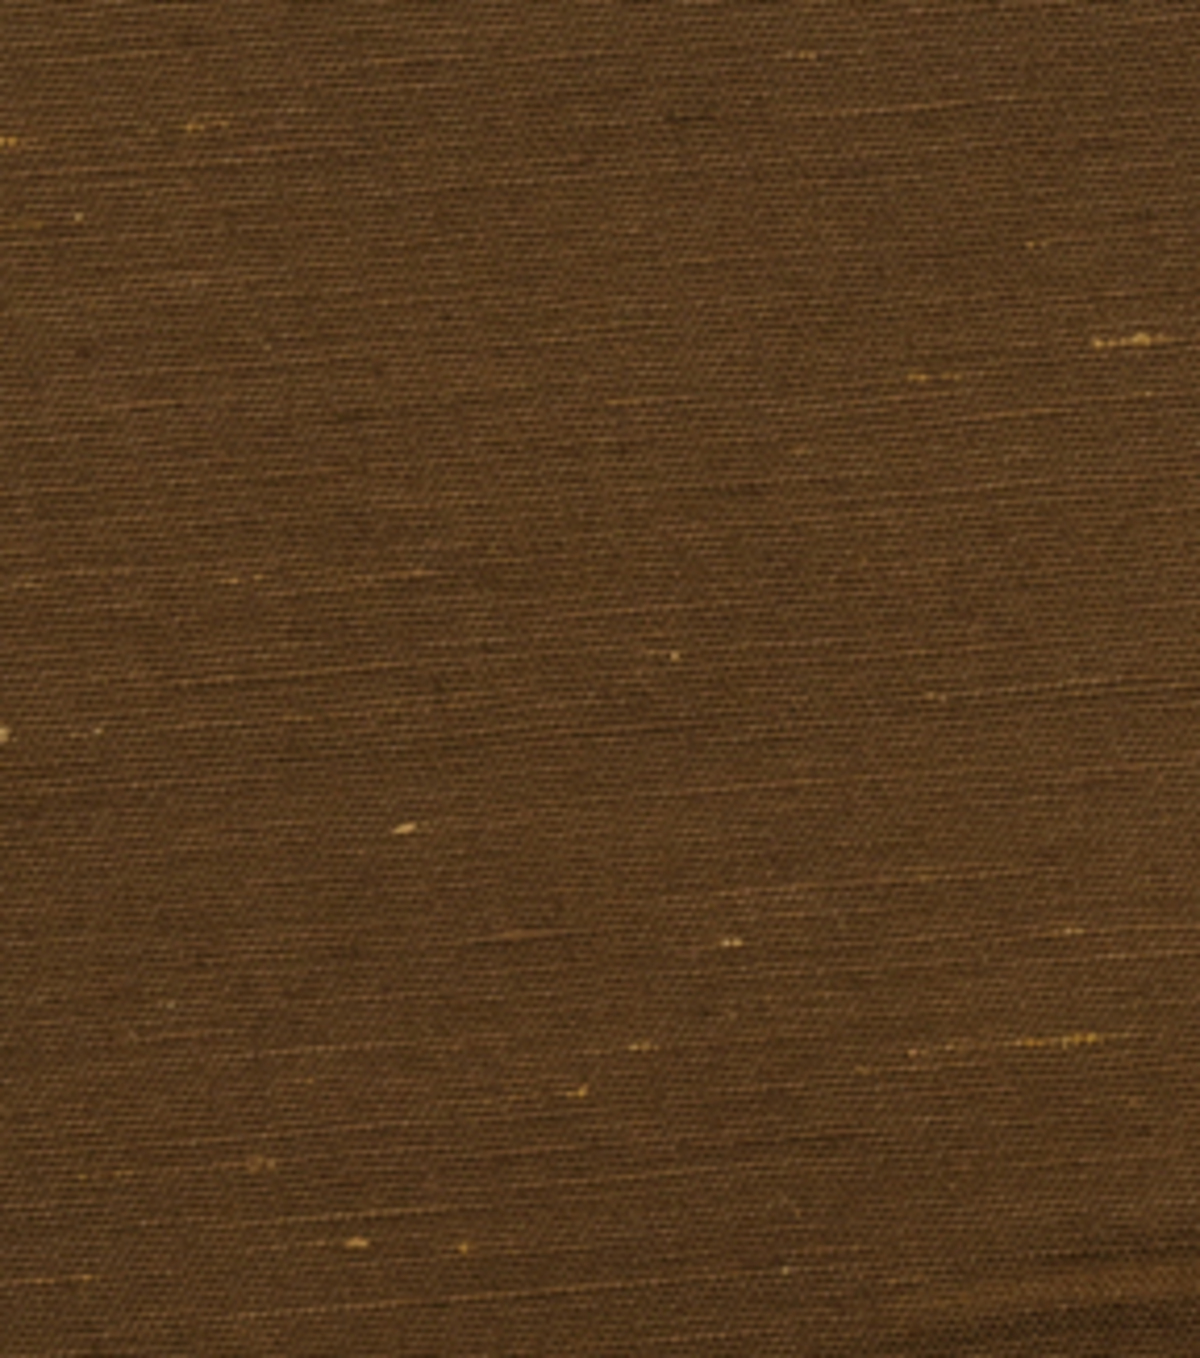 Home Decor 8\u0022x8\u0022 Fabric Swatch-Signature Series Sonoma Linen-Cotton Maple